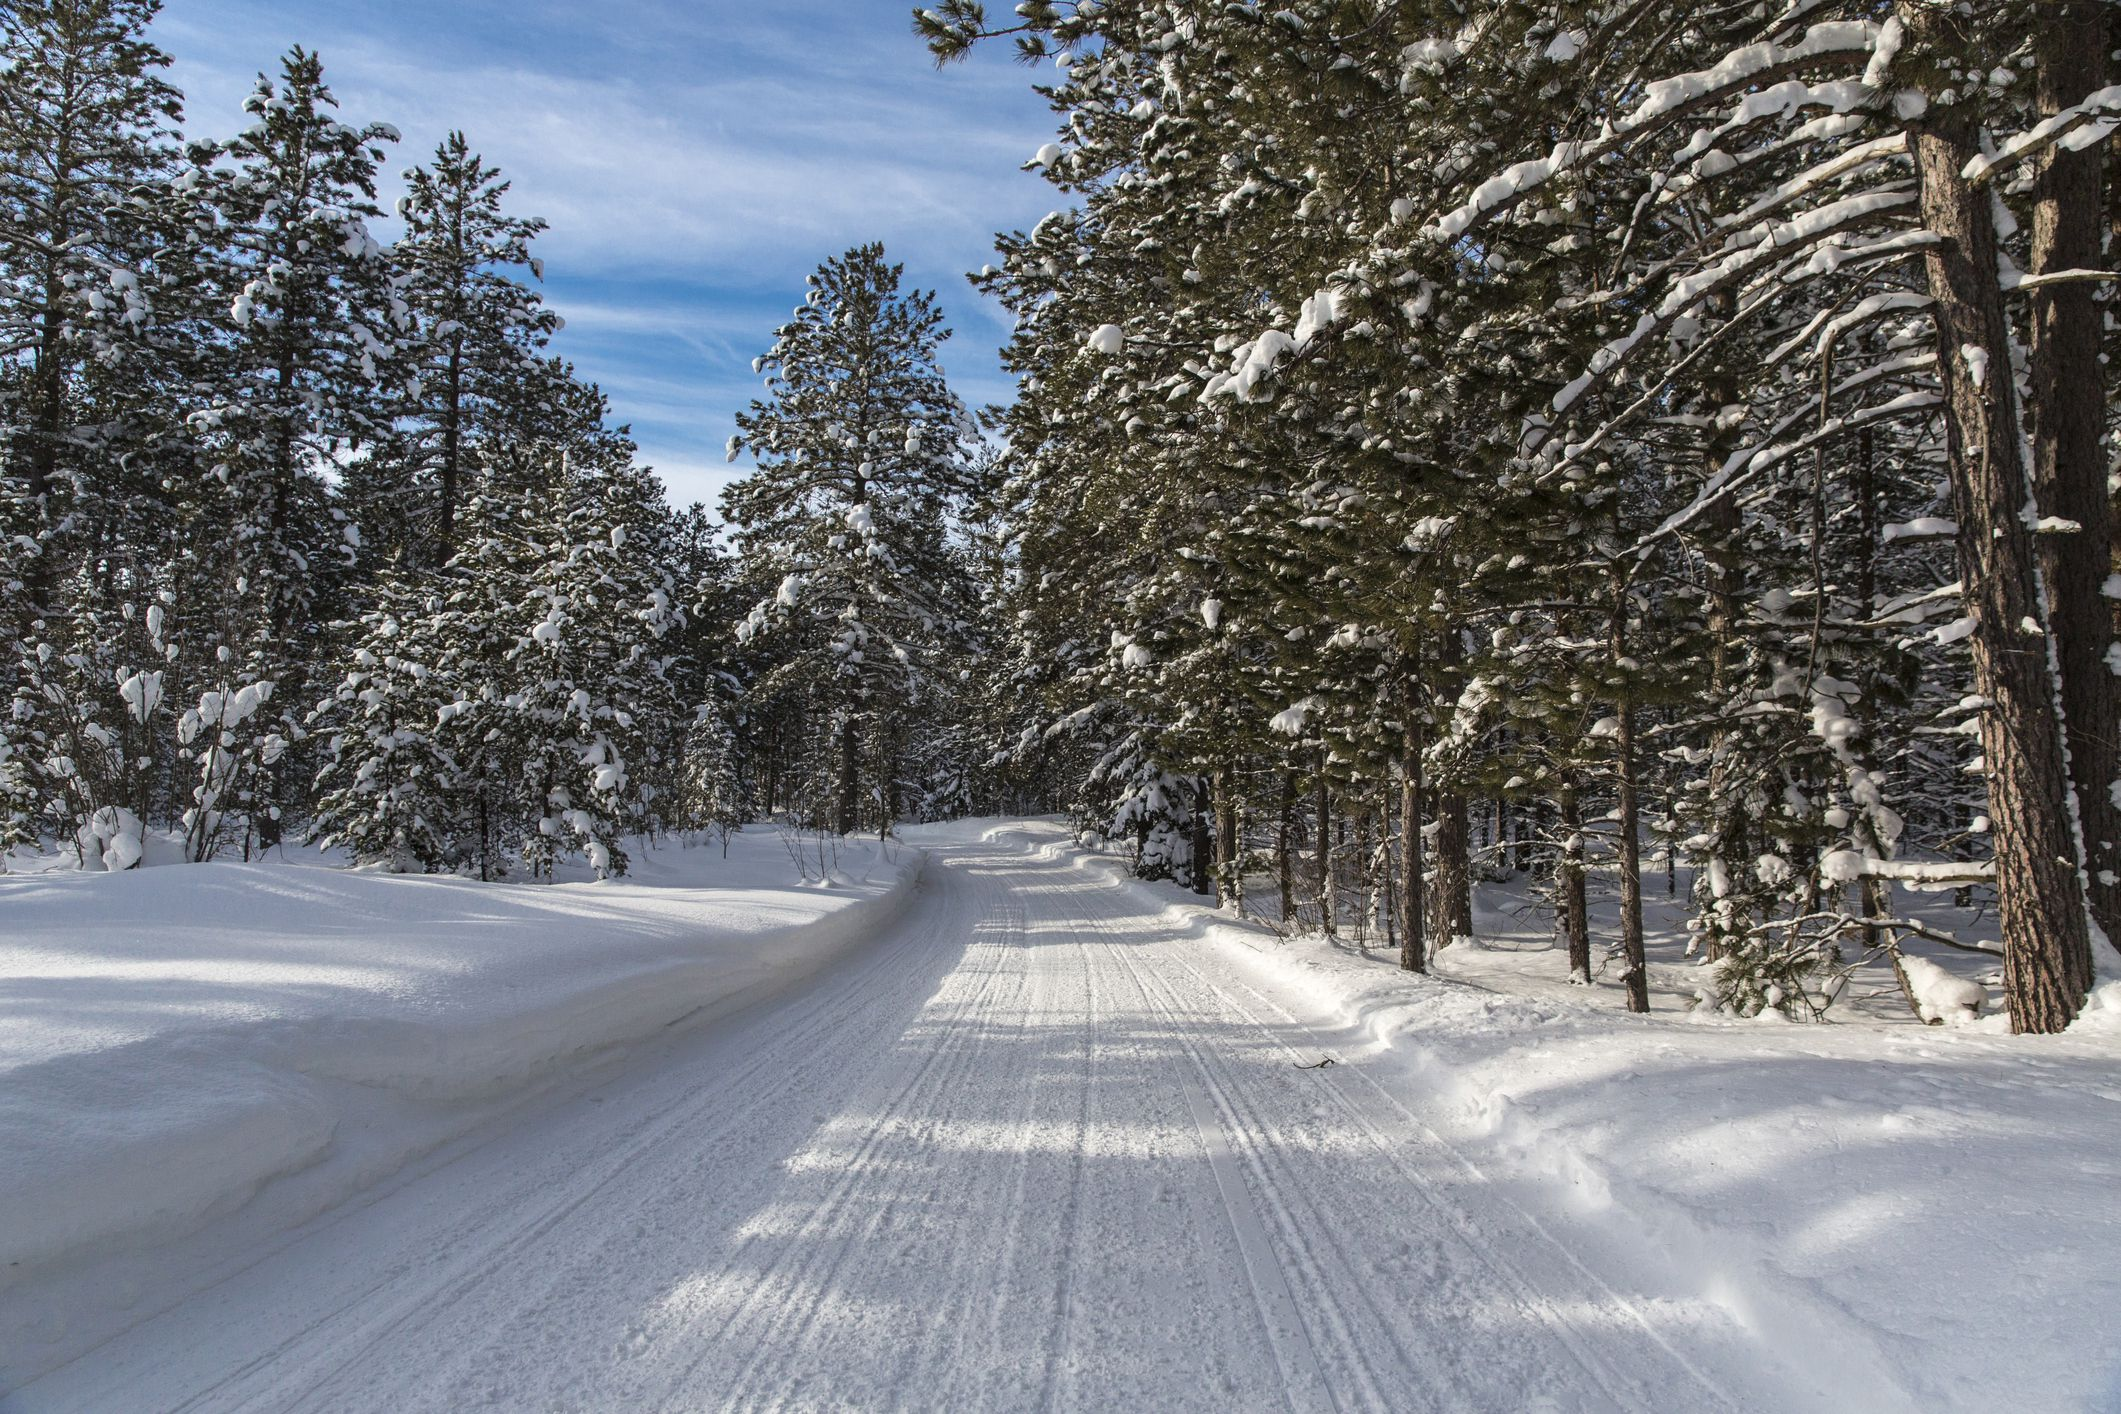 USA, Michigan, Paradise, View along snowy forest road